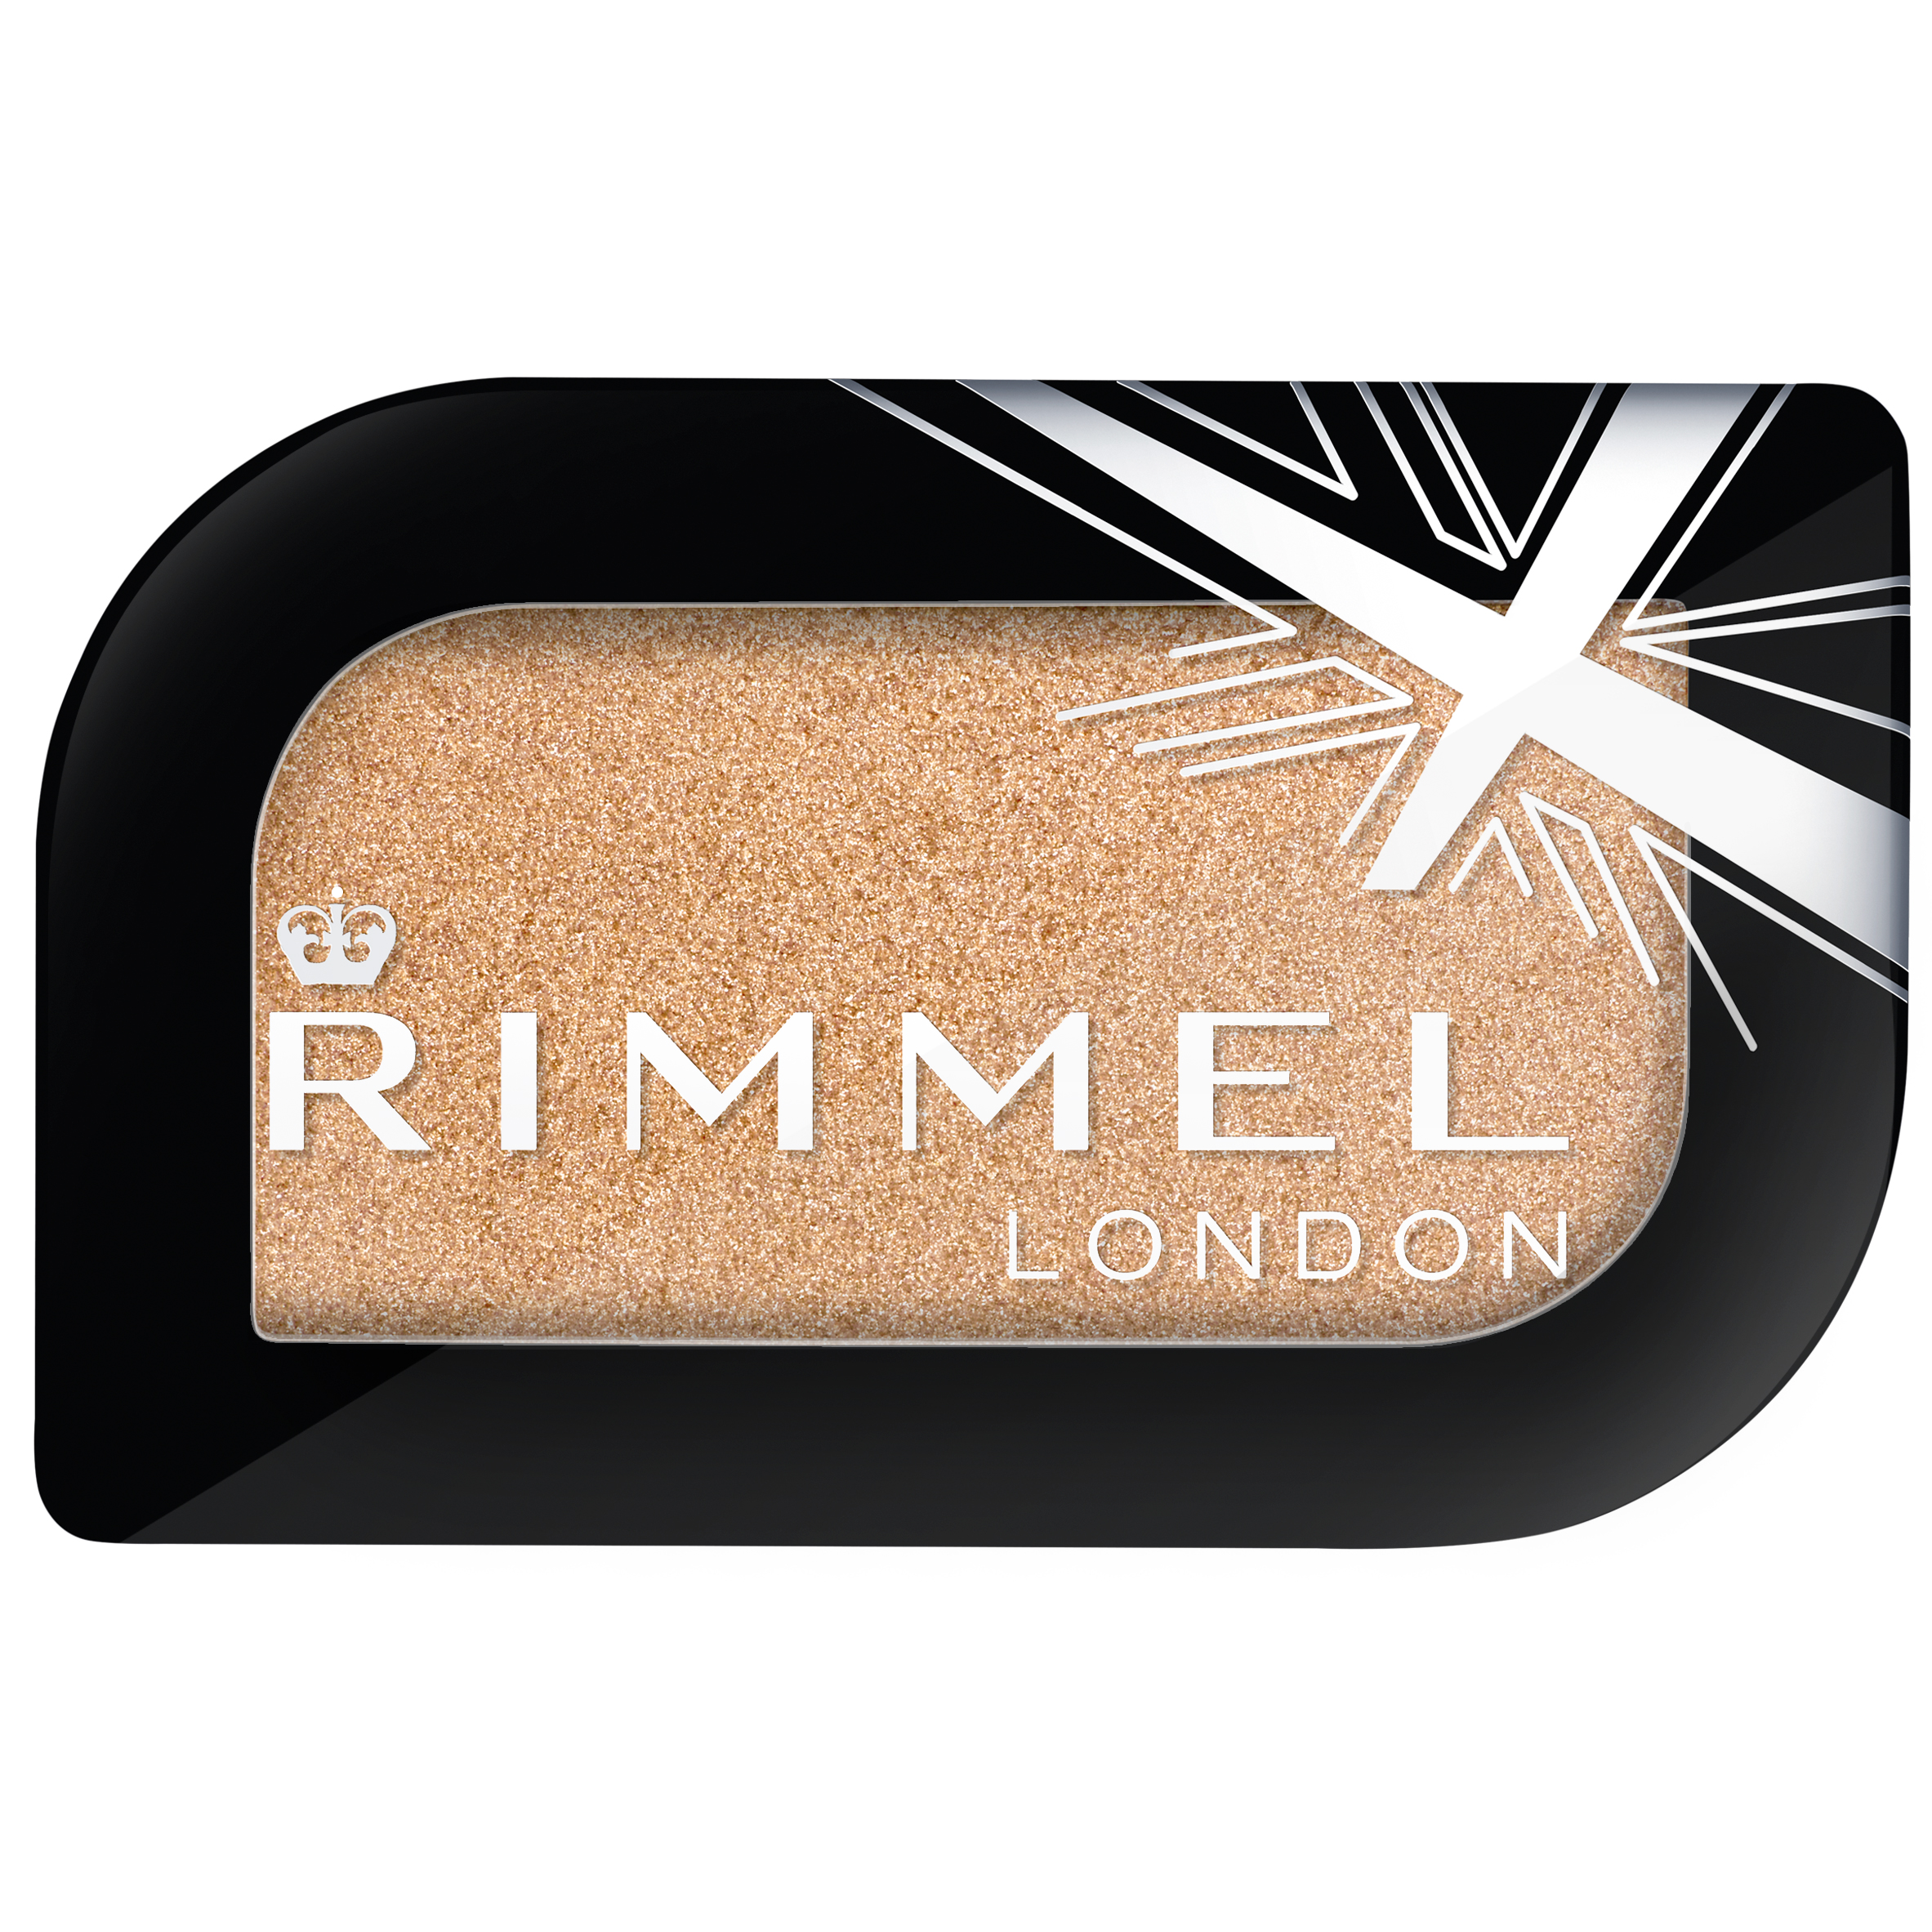 Rimmel London Magnif'eyes Mono Eye Shadow, Gold Record